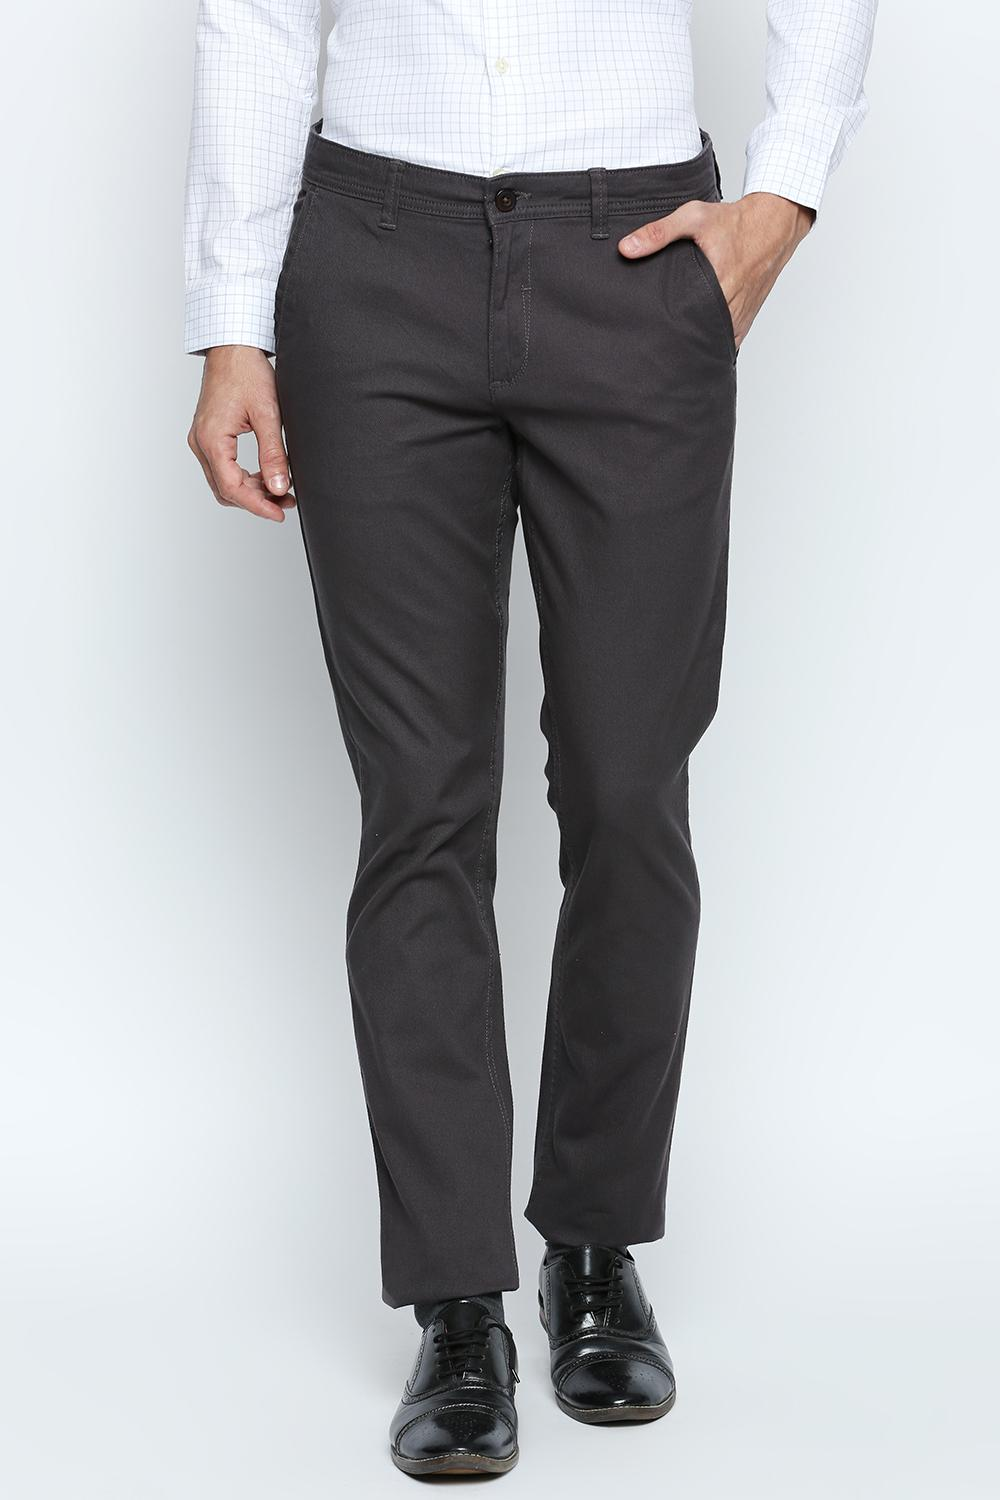 94dbf113 Buy Mens Trousers and Chinos Online in India | Pantaloons